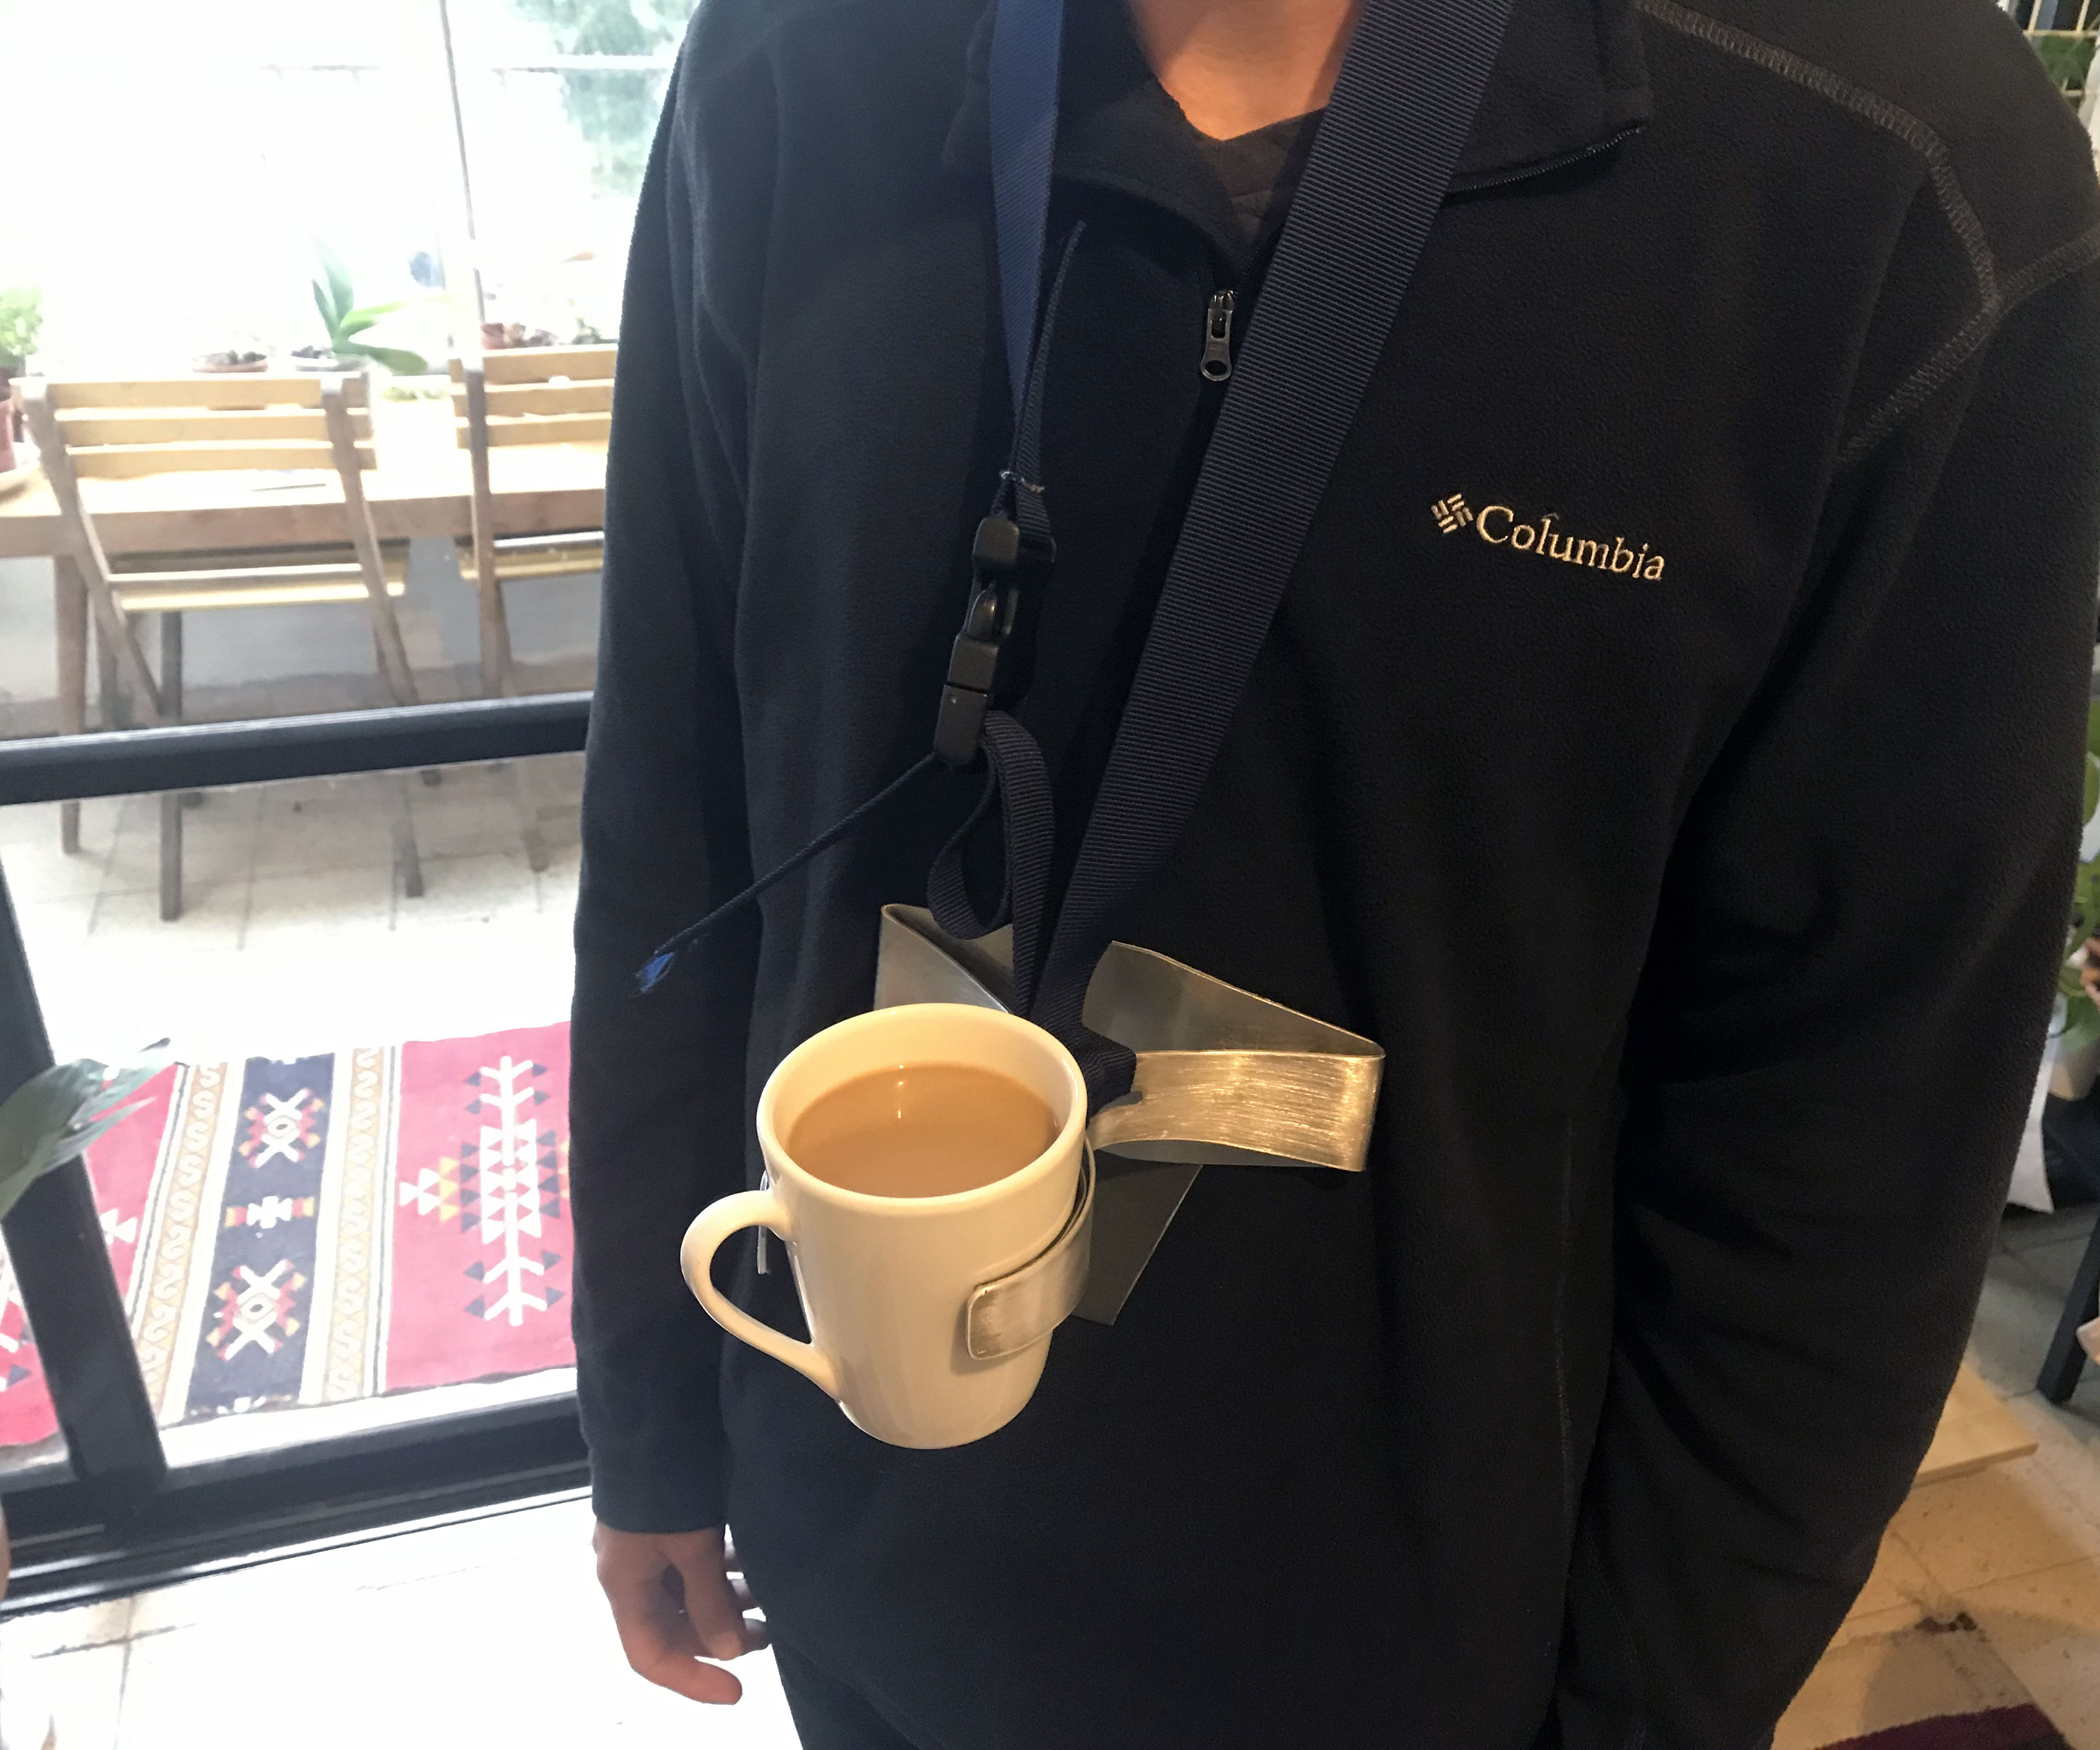 Neck Cup Holder for Carrying